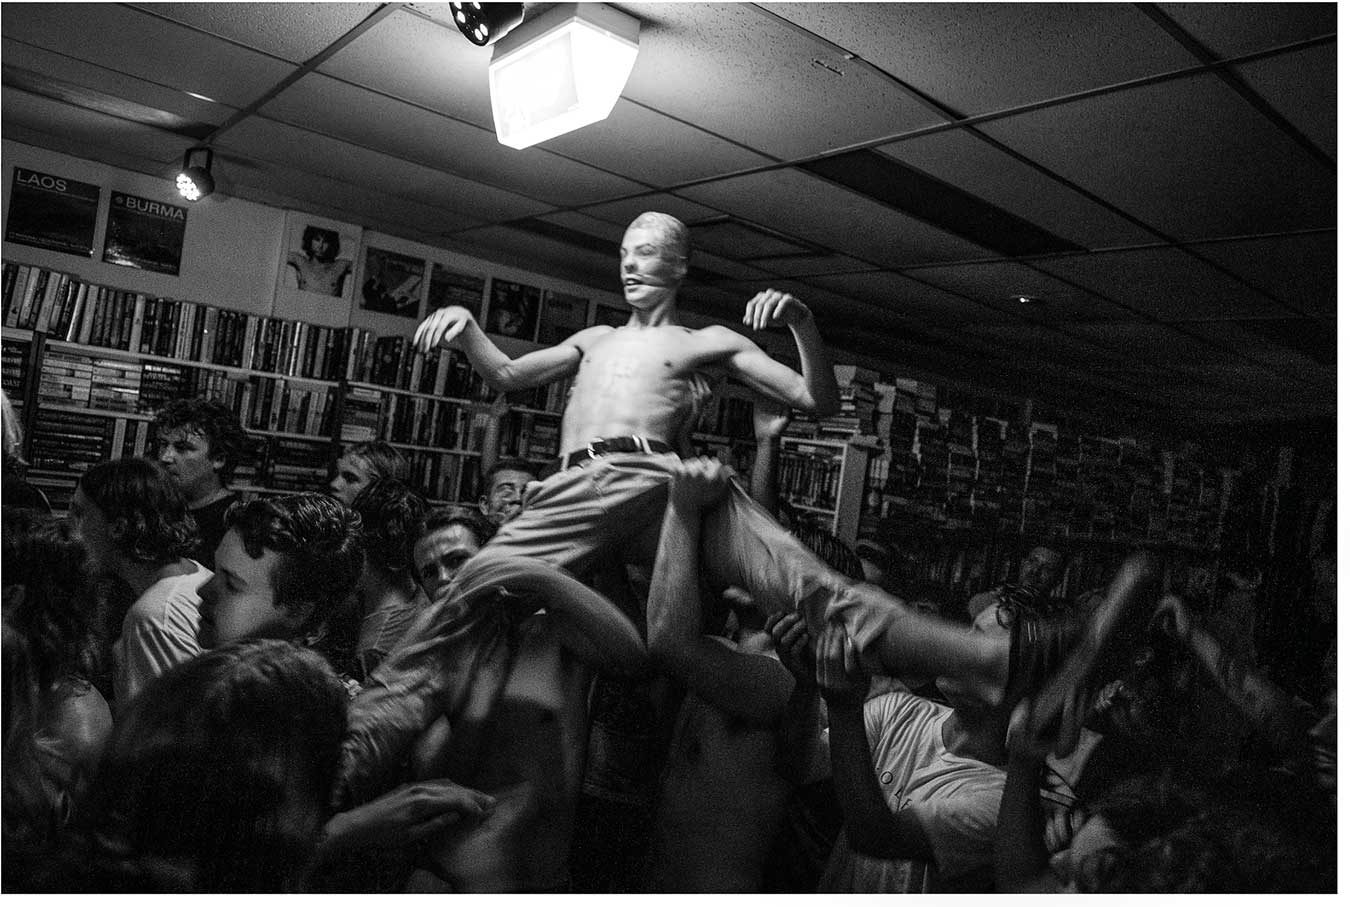 black-and-white-photo-of-a-man-with-a-stocking-pulled-over-his-head-at-a-music-performance-in-a-bookstore